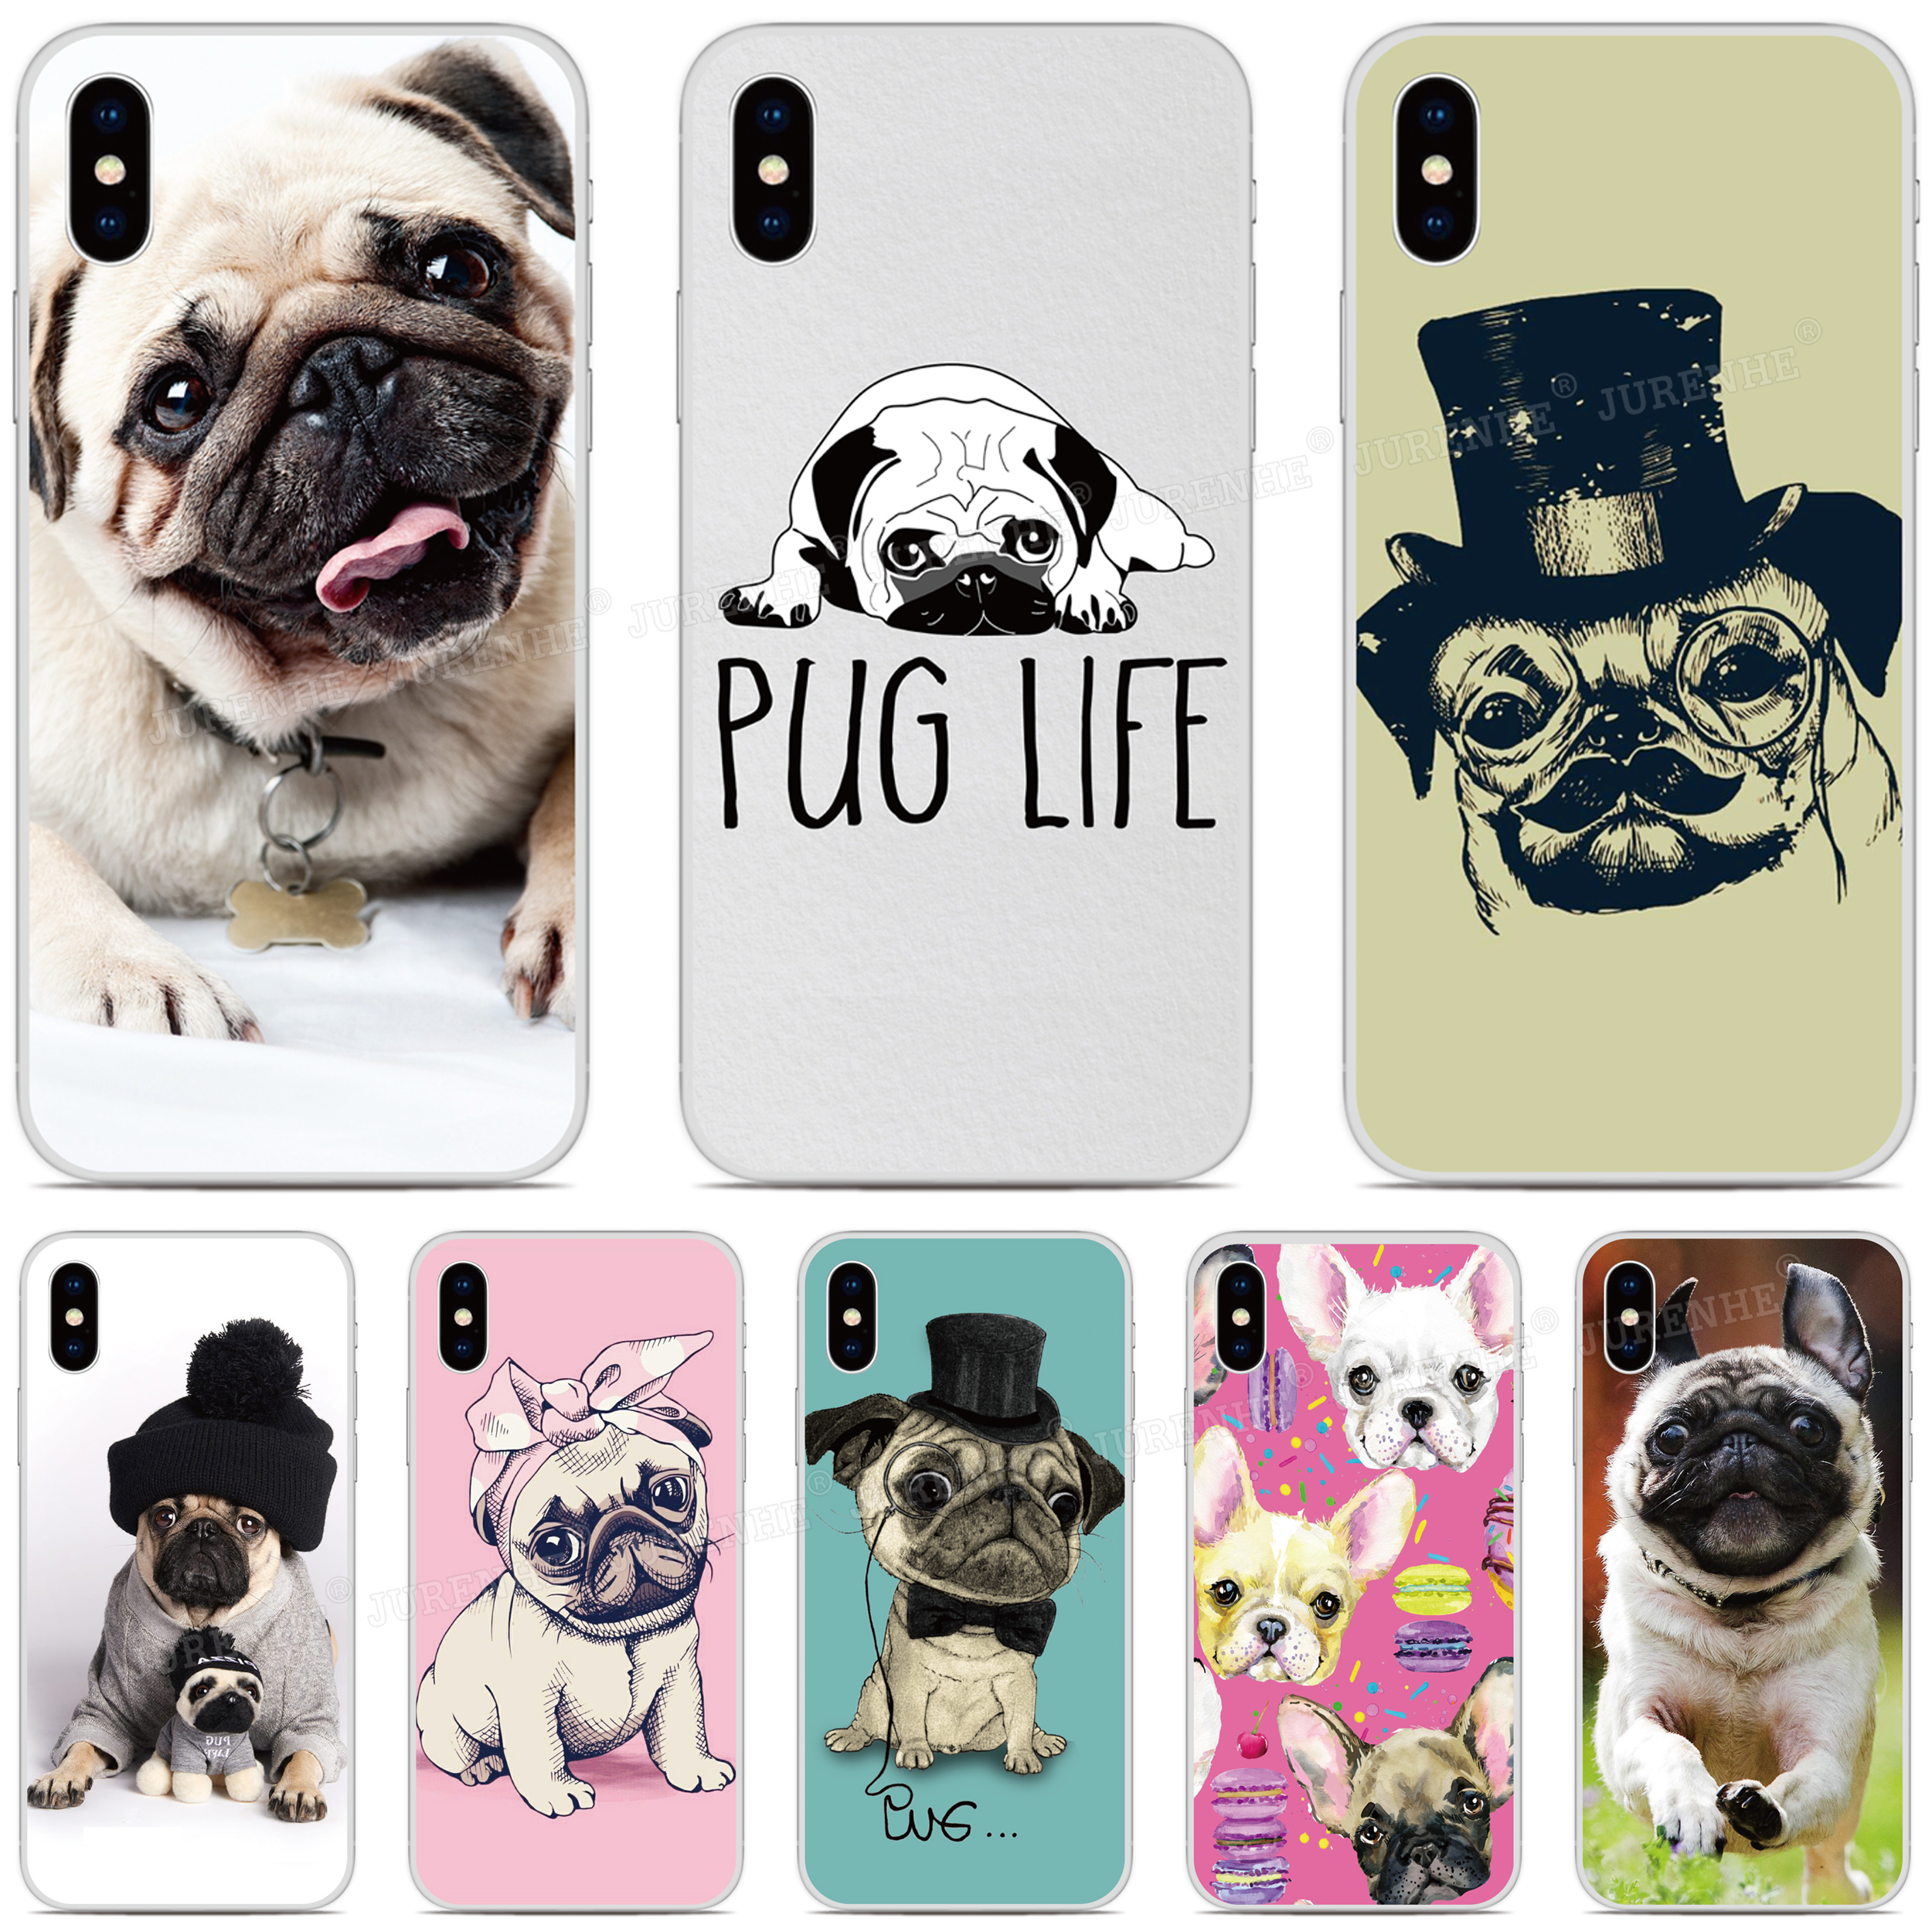 Soft TPU Pug Puppy Dog Pattern Phone <font><b>Case</b></font> For <font><b>Doogee</b></font> X90 N20 Y9 Plus N10 Y7 Y8 Y8C <font><b>X70</b></font> X60 X60L X50 X50L X30 X55 <font><b>Silicone</b></font> Cover image